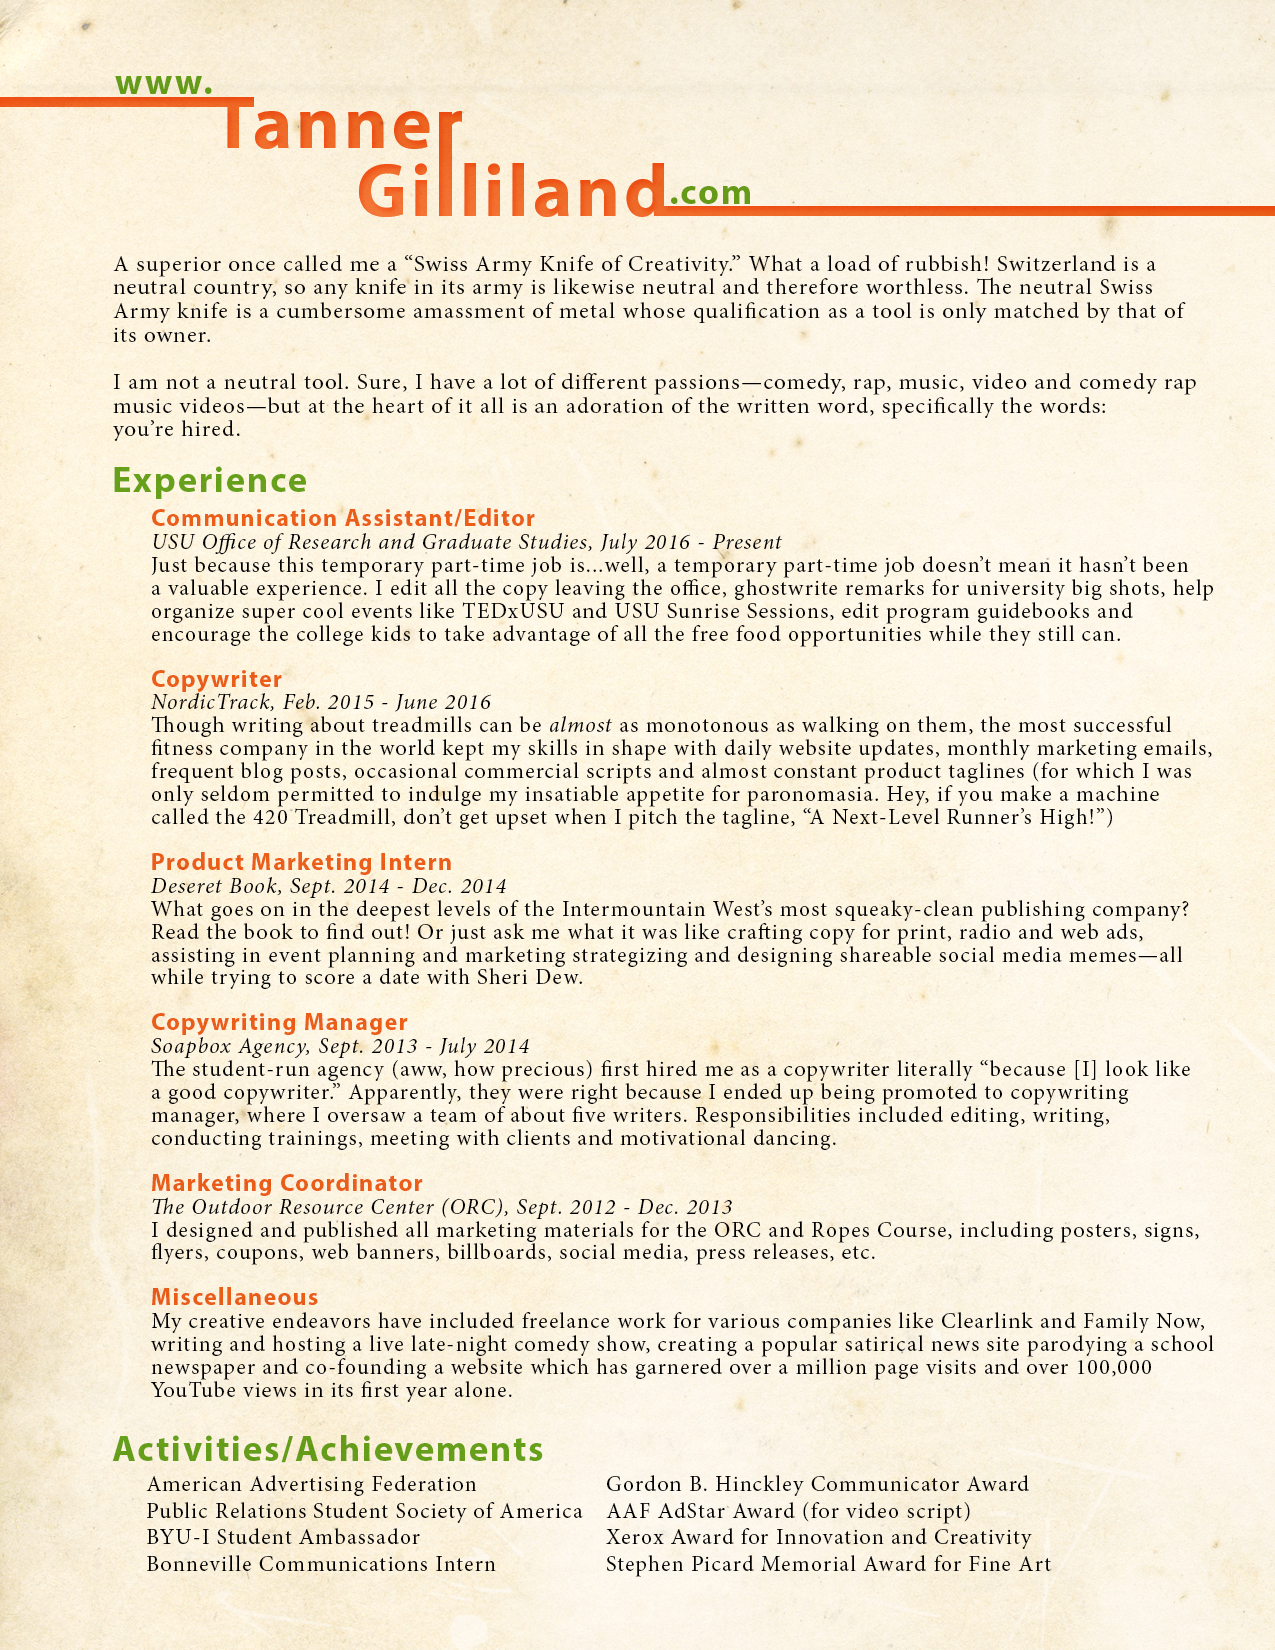 resume tanner gilliland radio copy writer resume - Sample Ad Copywriter Resume